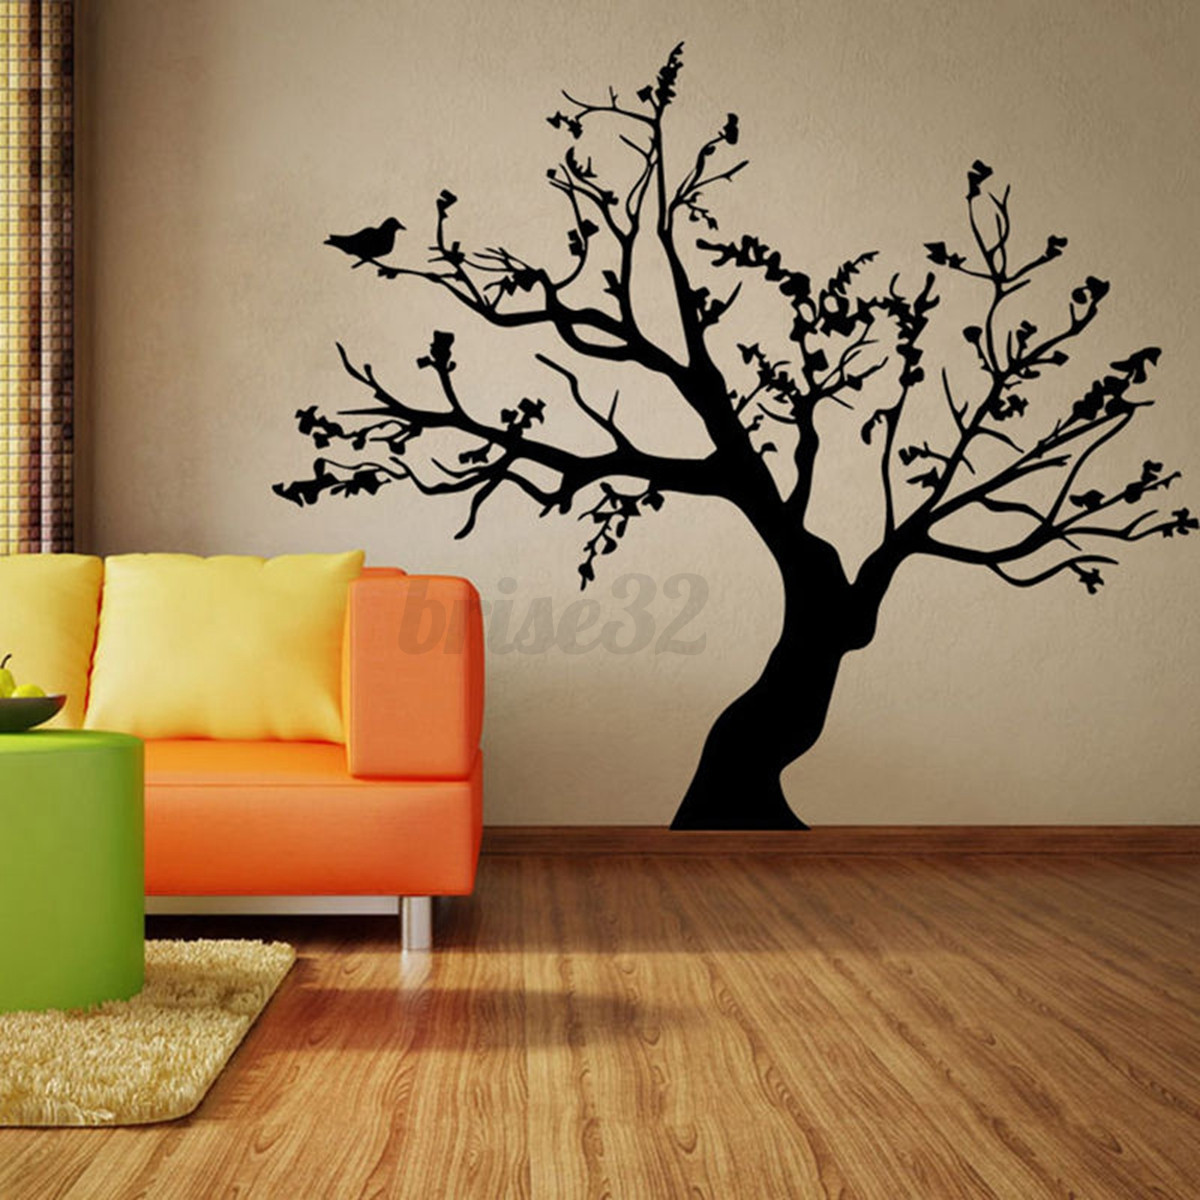 Large family tree diy decal paper art wall sticker home for Diy tree wall mural